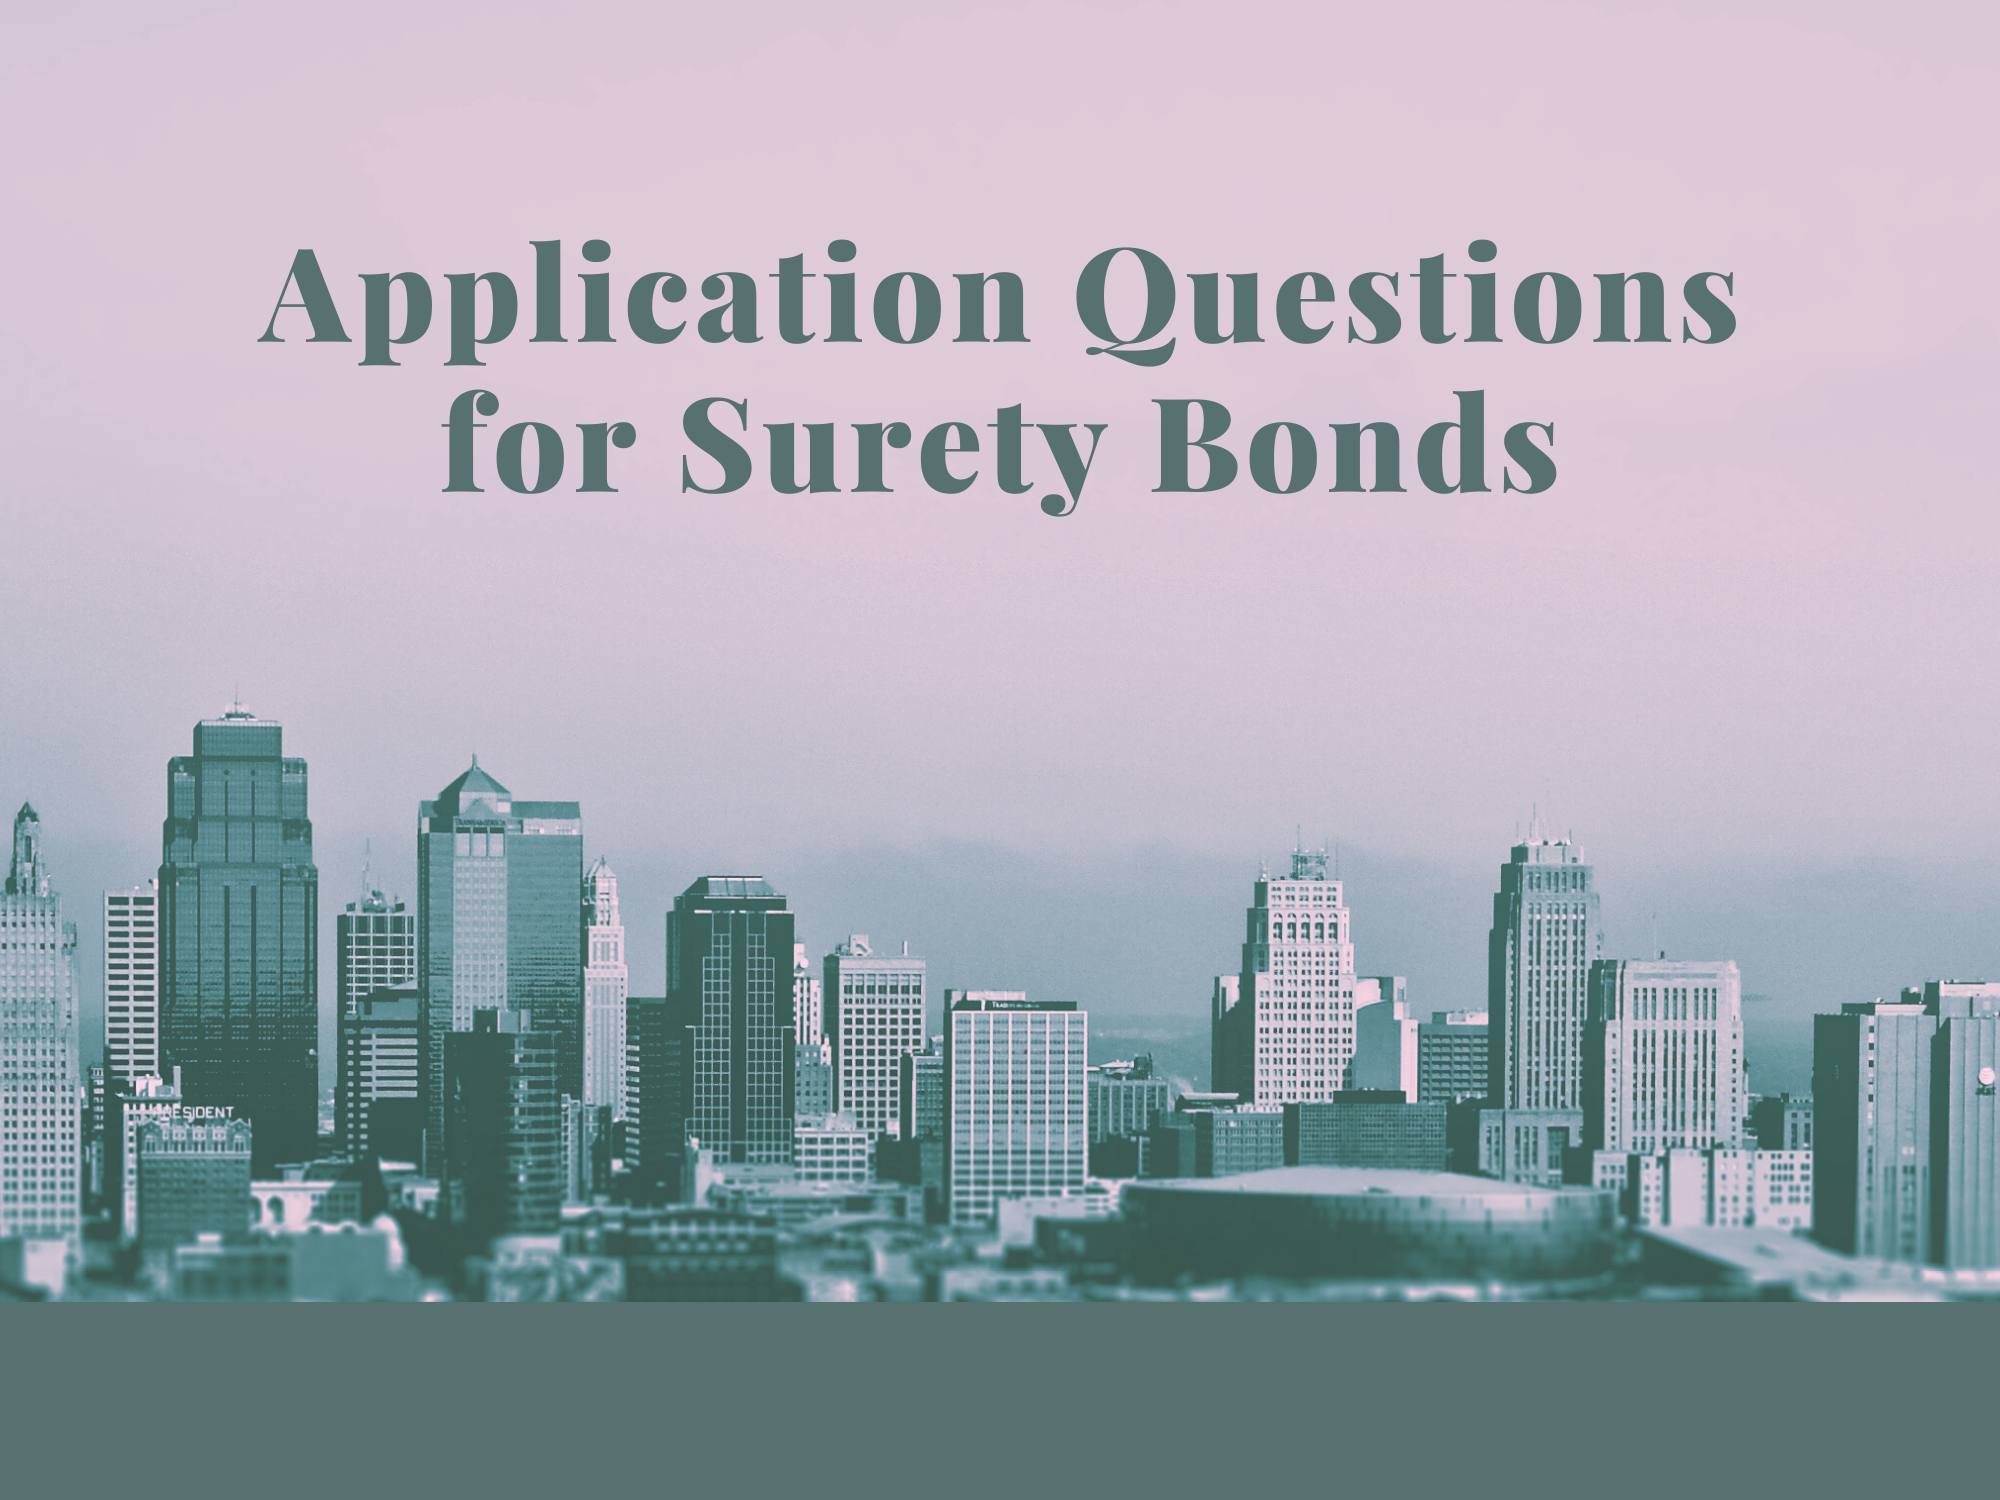 surety bonds - do indemnification agreements have a time limit - buildings in light grey shade